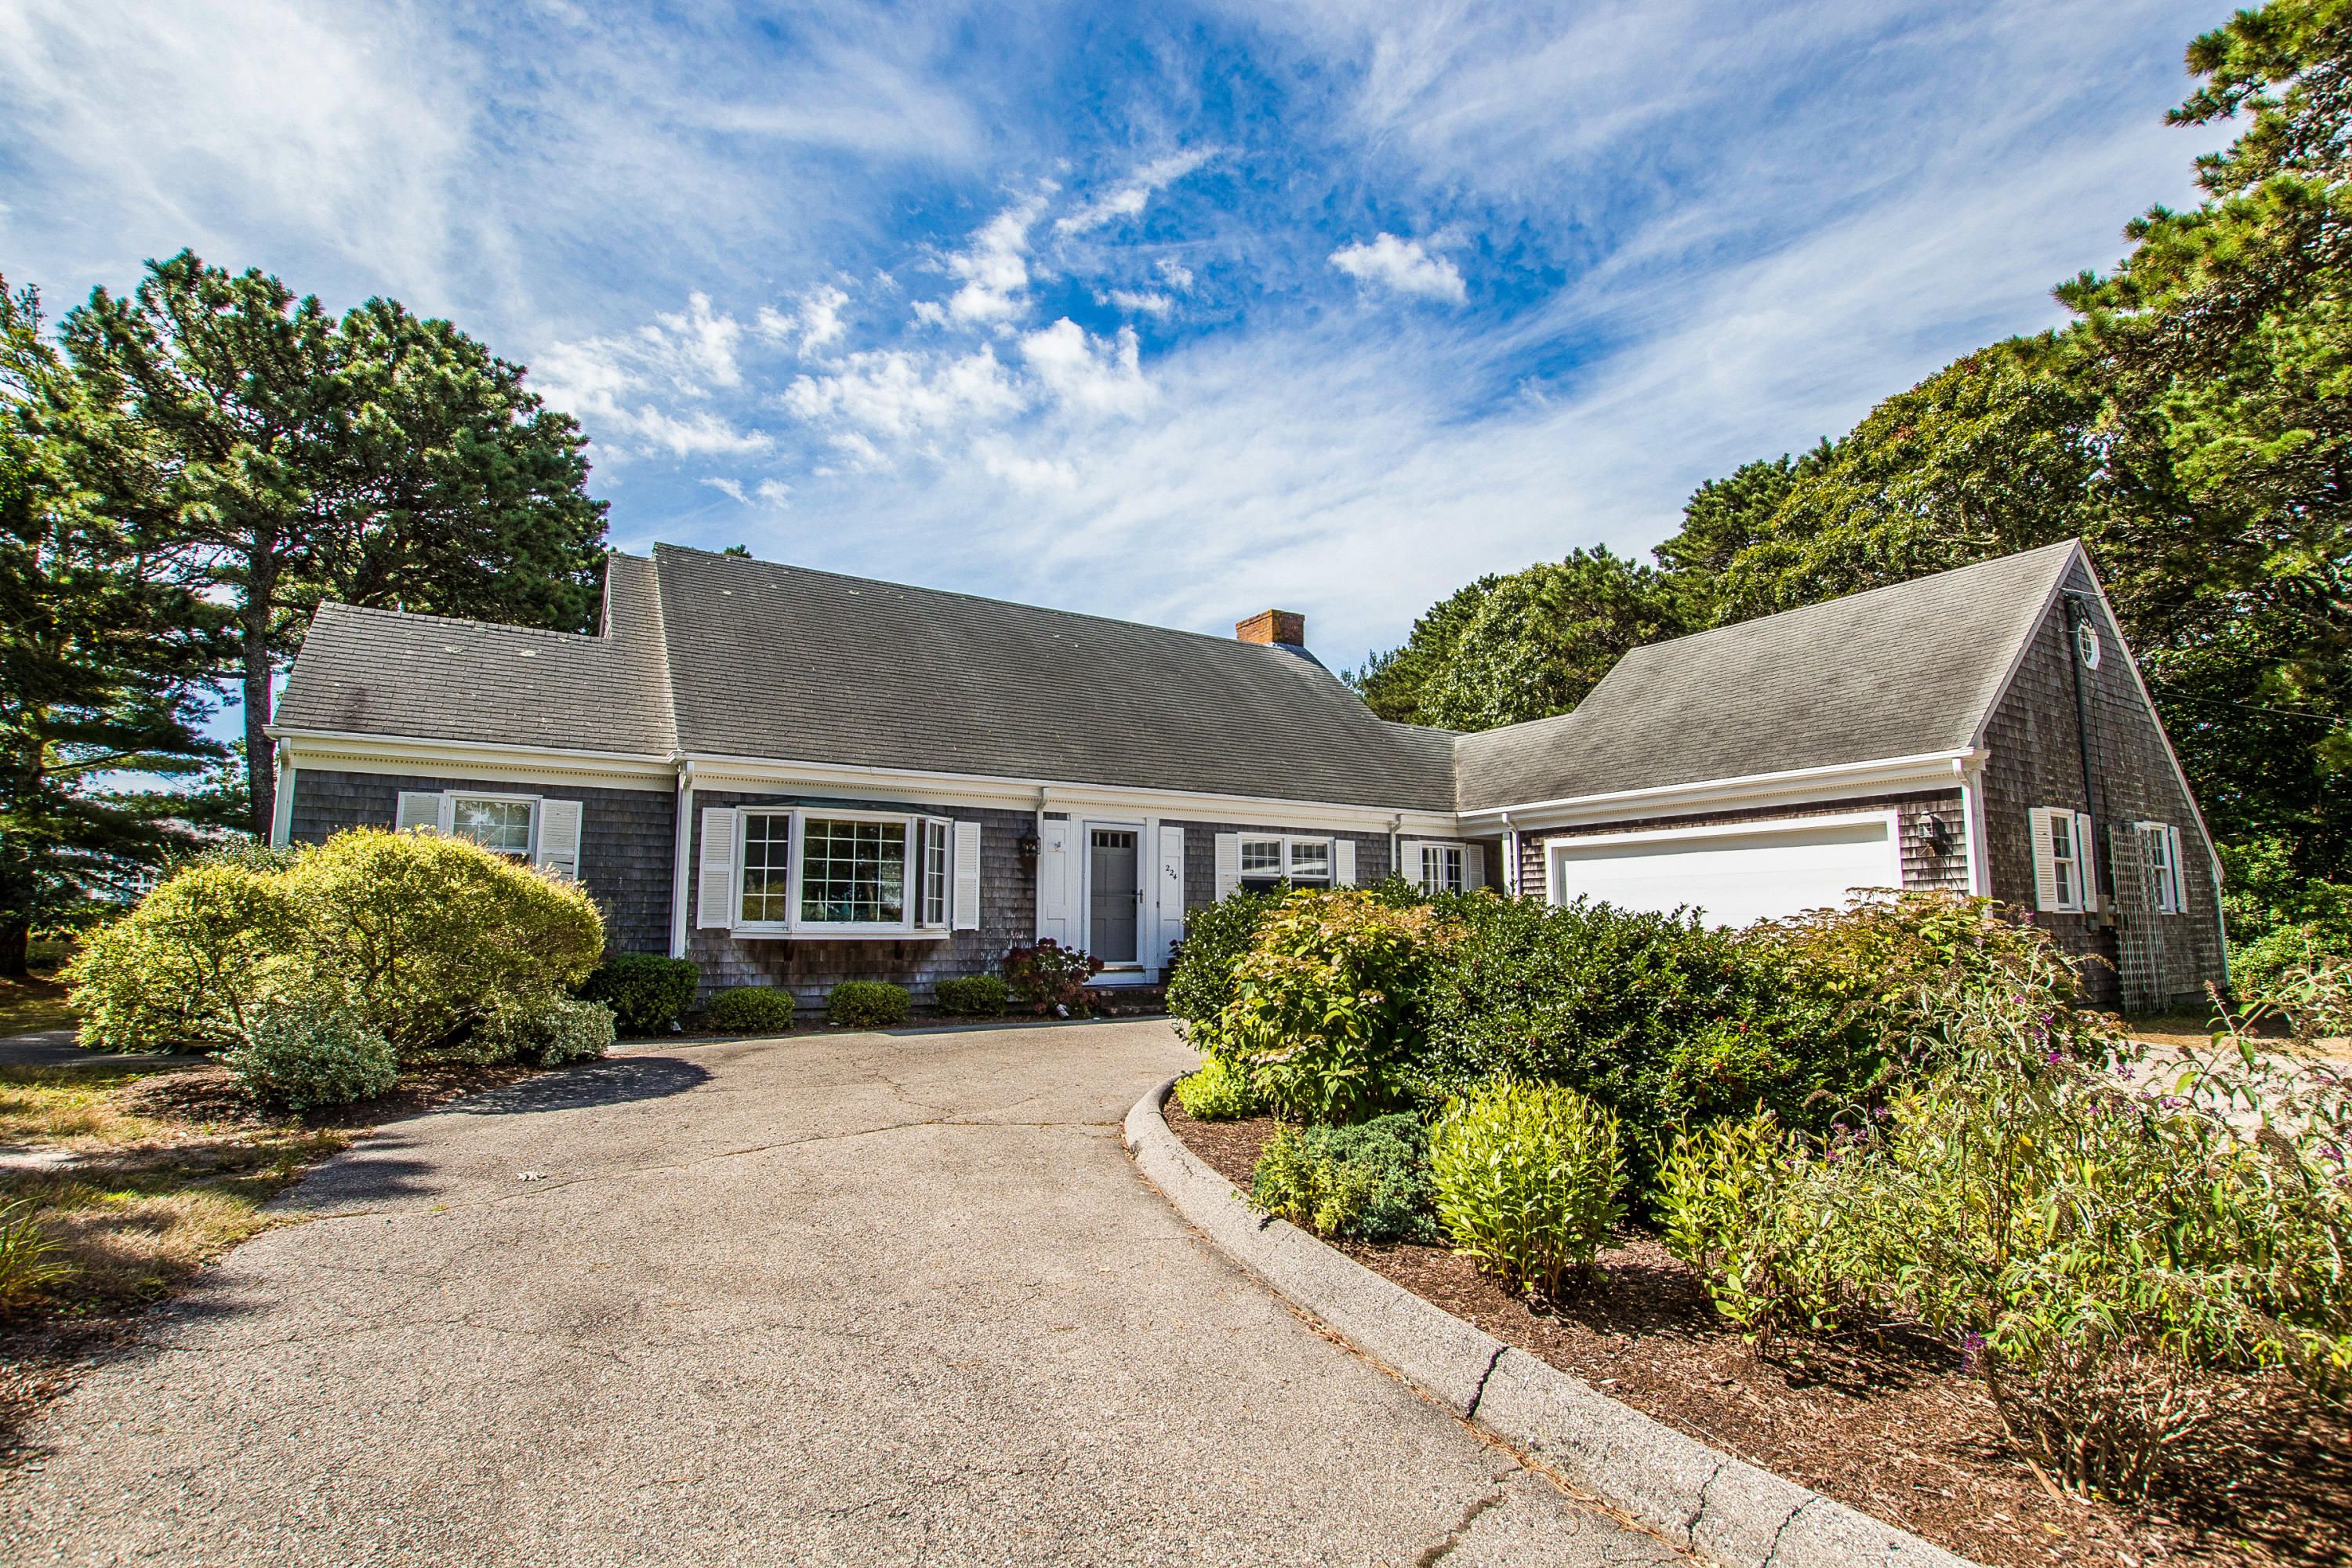 224 Seapine Road, North Chatham MA, 02650 sales details